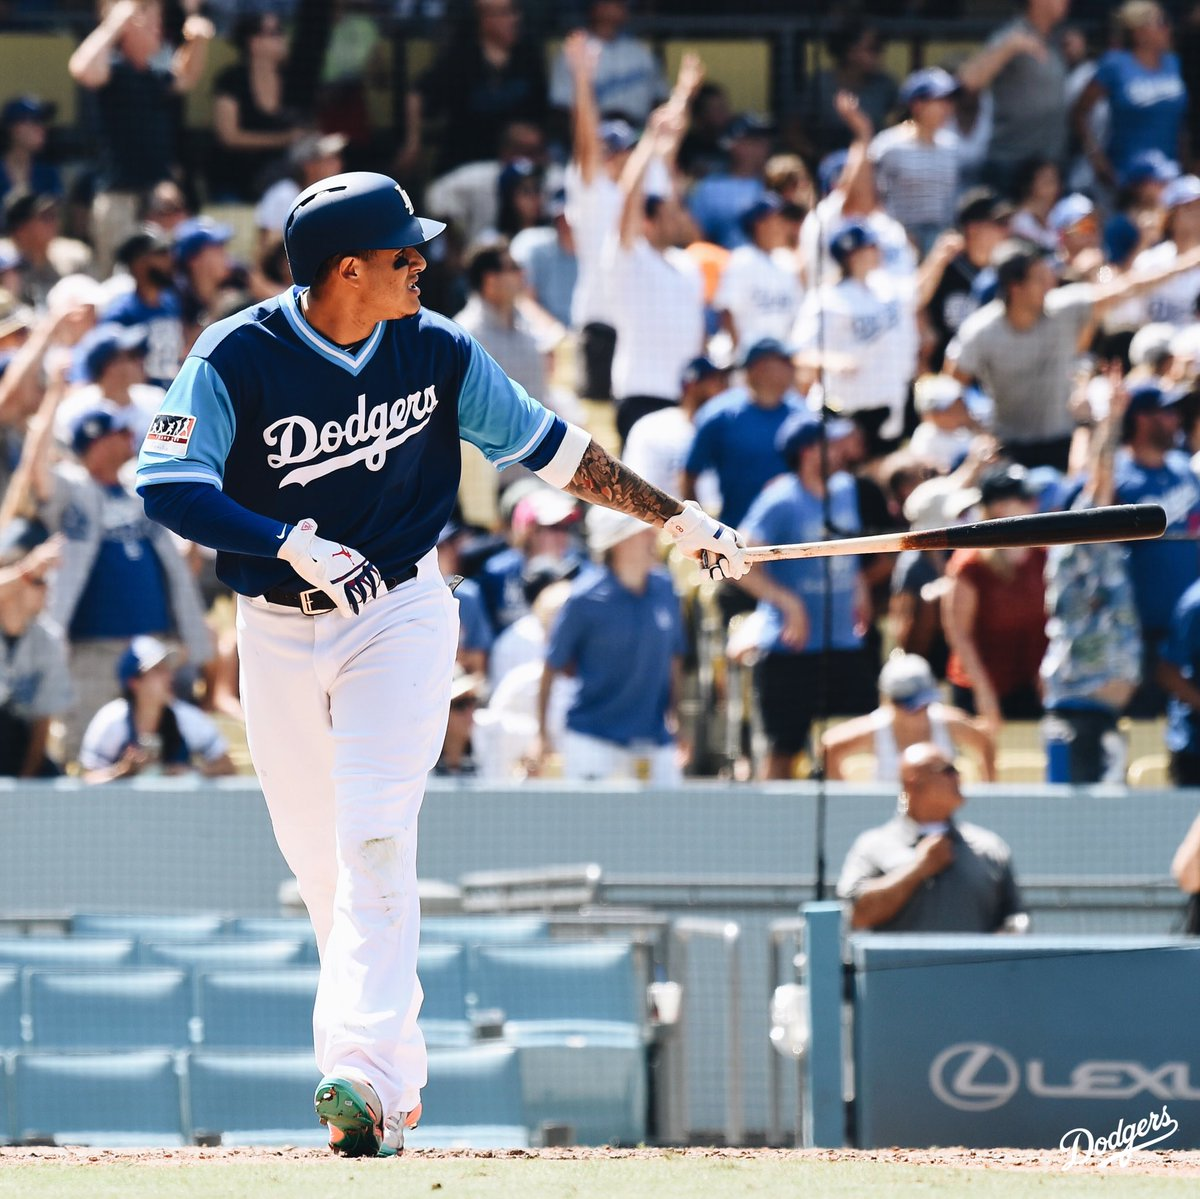 155d1e0a91c192 Los Angeles Dodgers on Twitter: